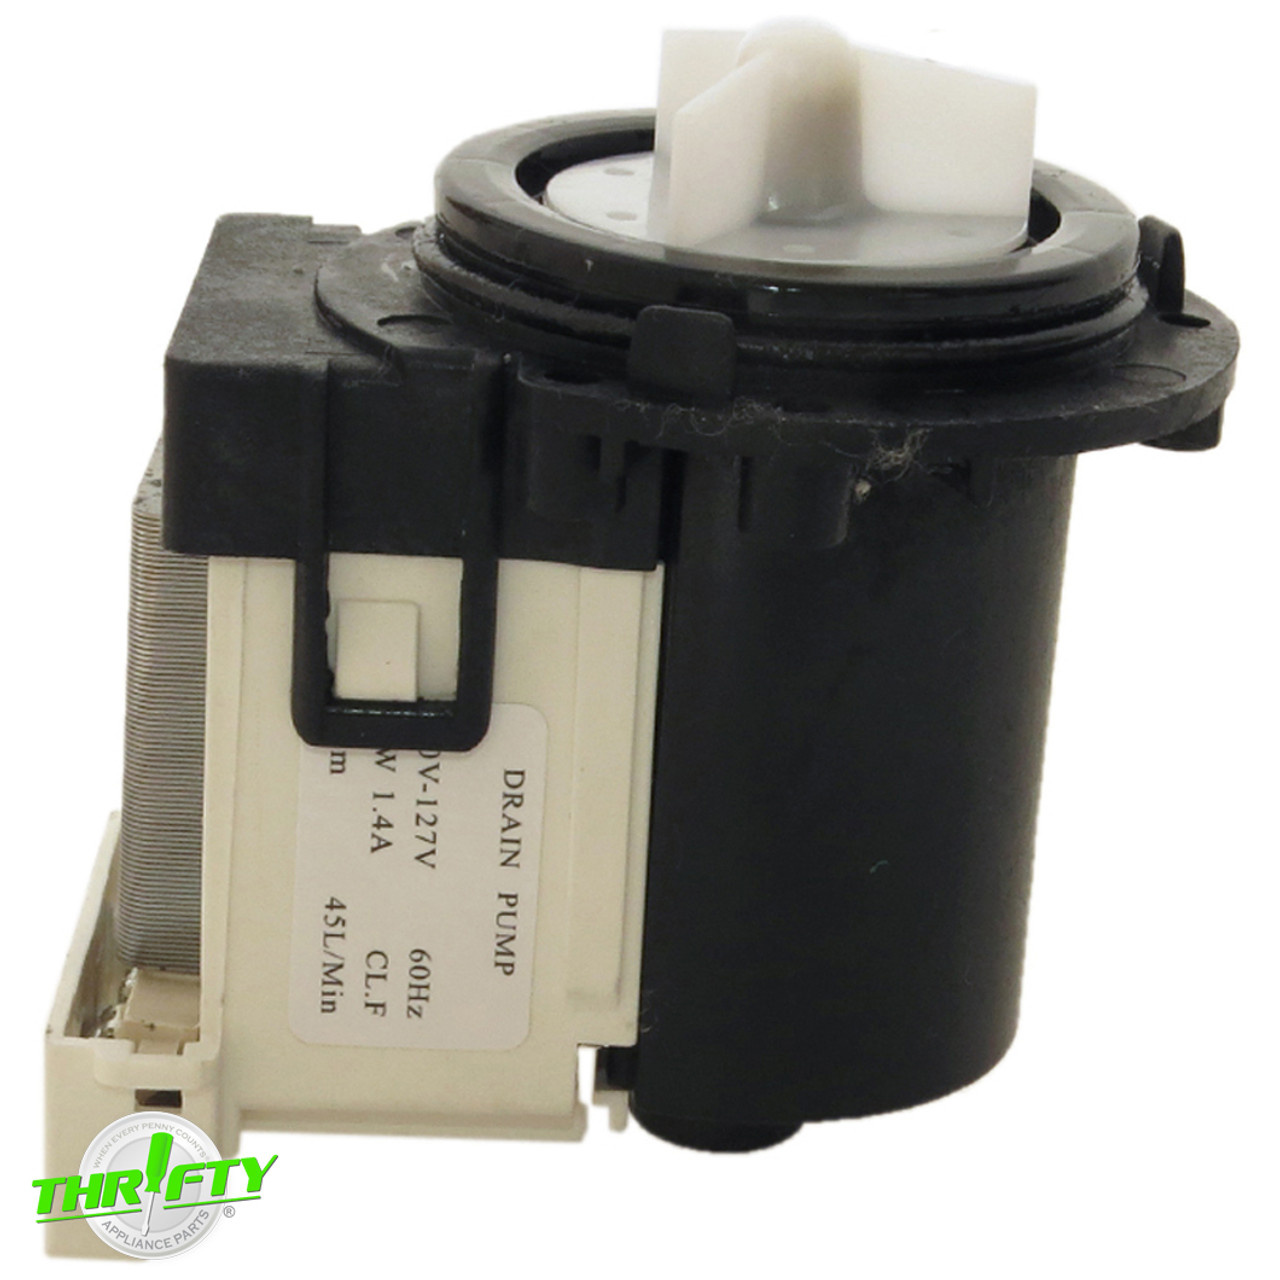 4681ea2001t Washer Drain Pump Motor For Lg Thrifty Appliance Parts